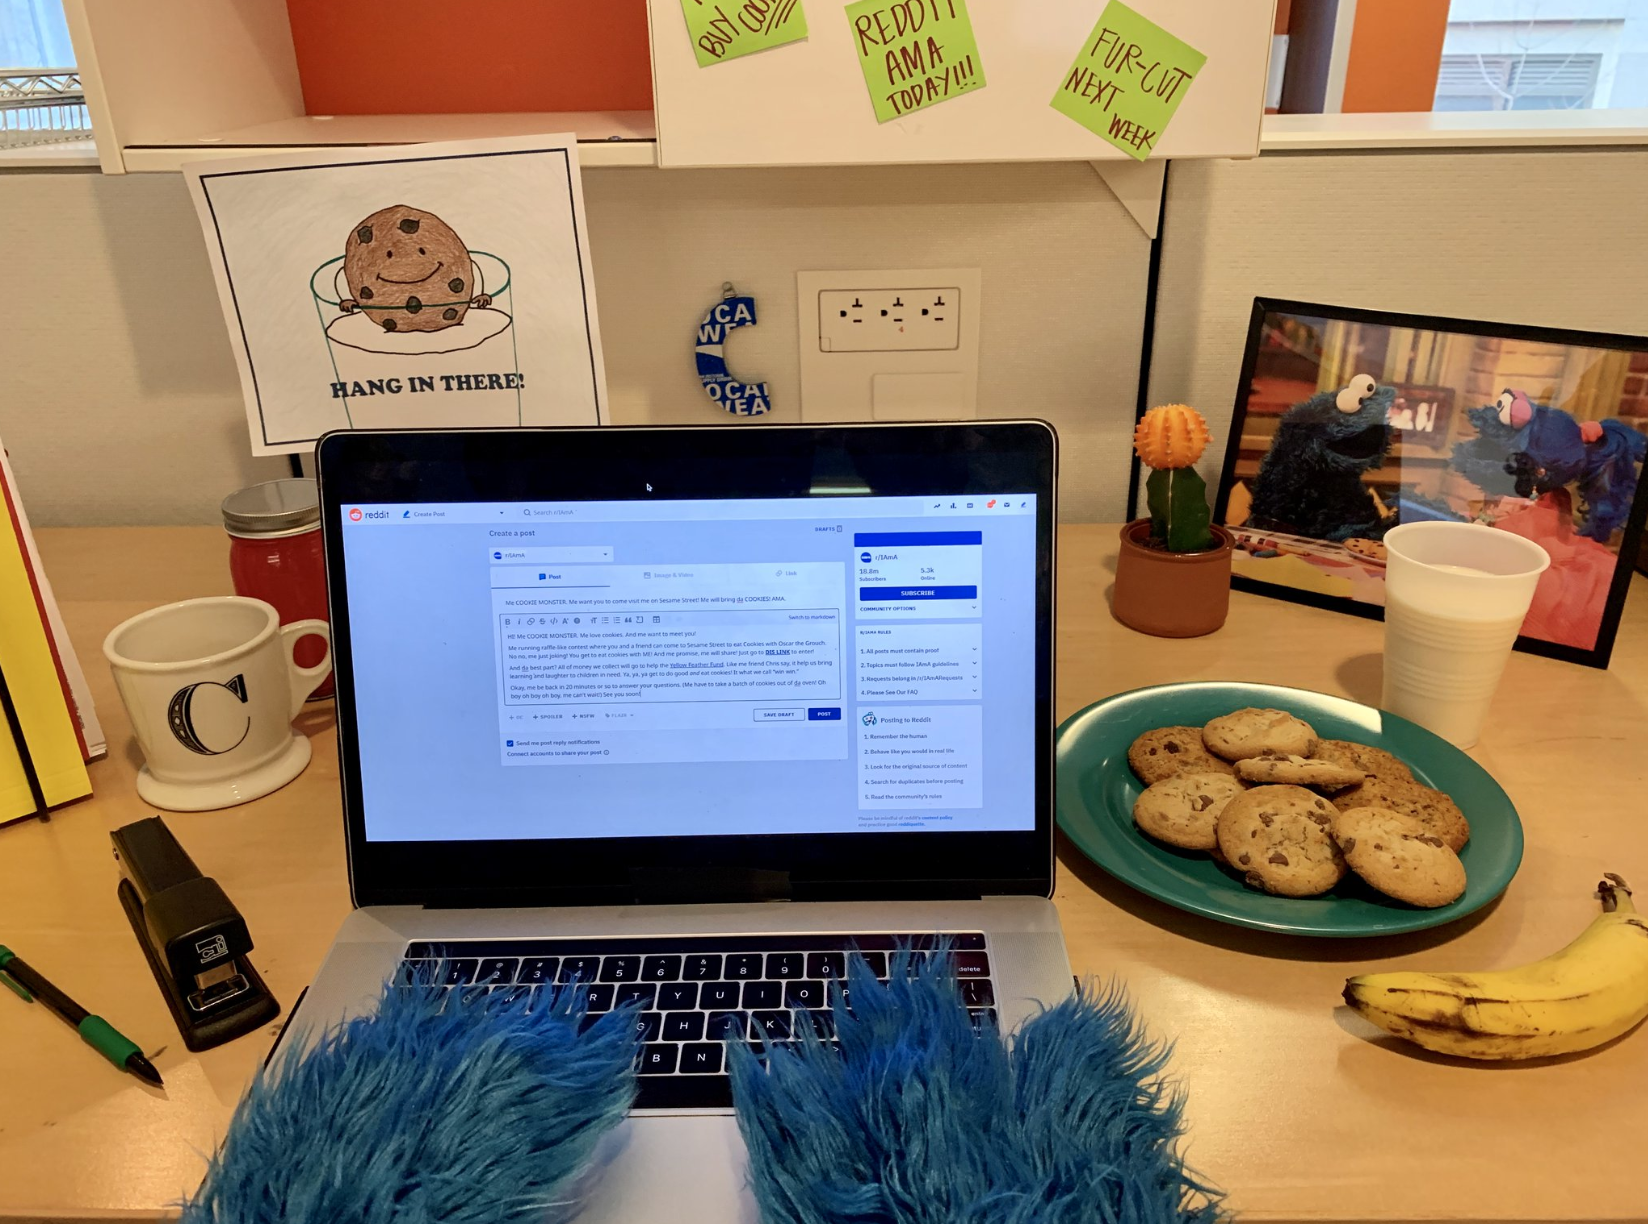 A photo of Cookie Monster at his computer keyboard.